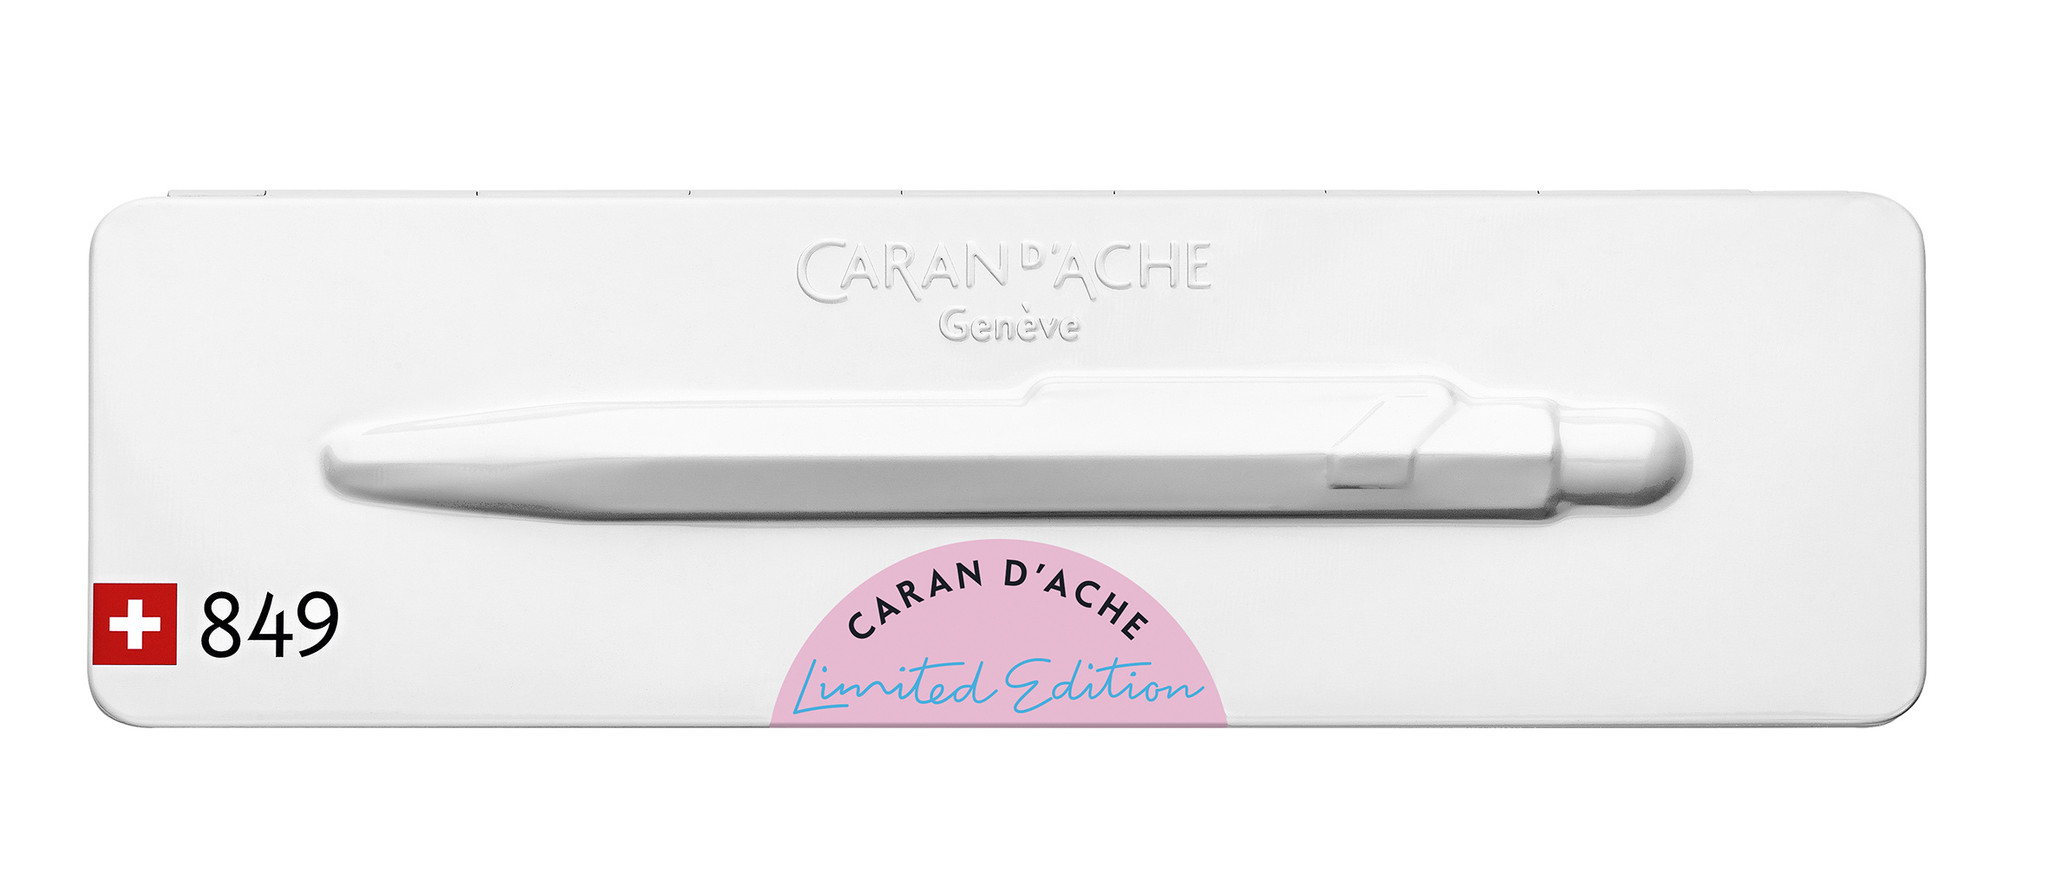 Caran d'Ache 849 Claim your style 2020 hibiscus pink